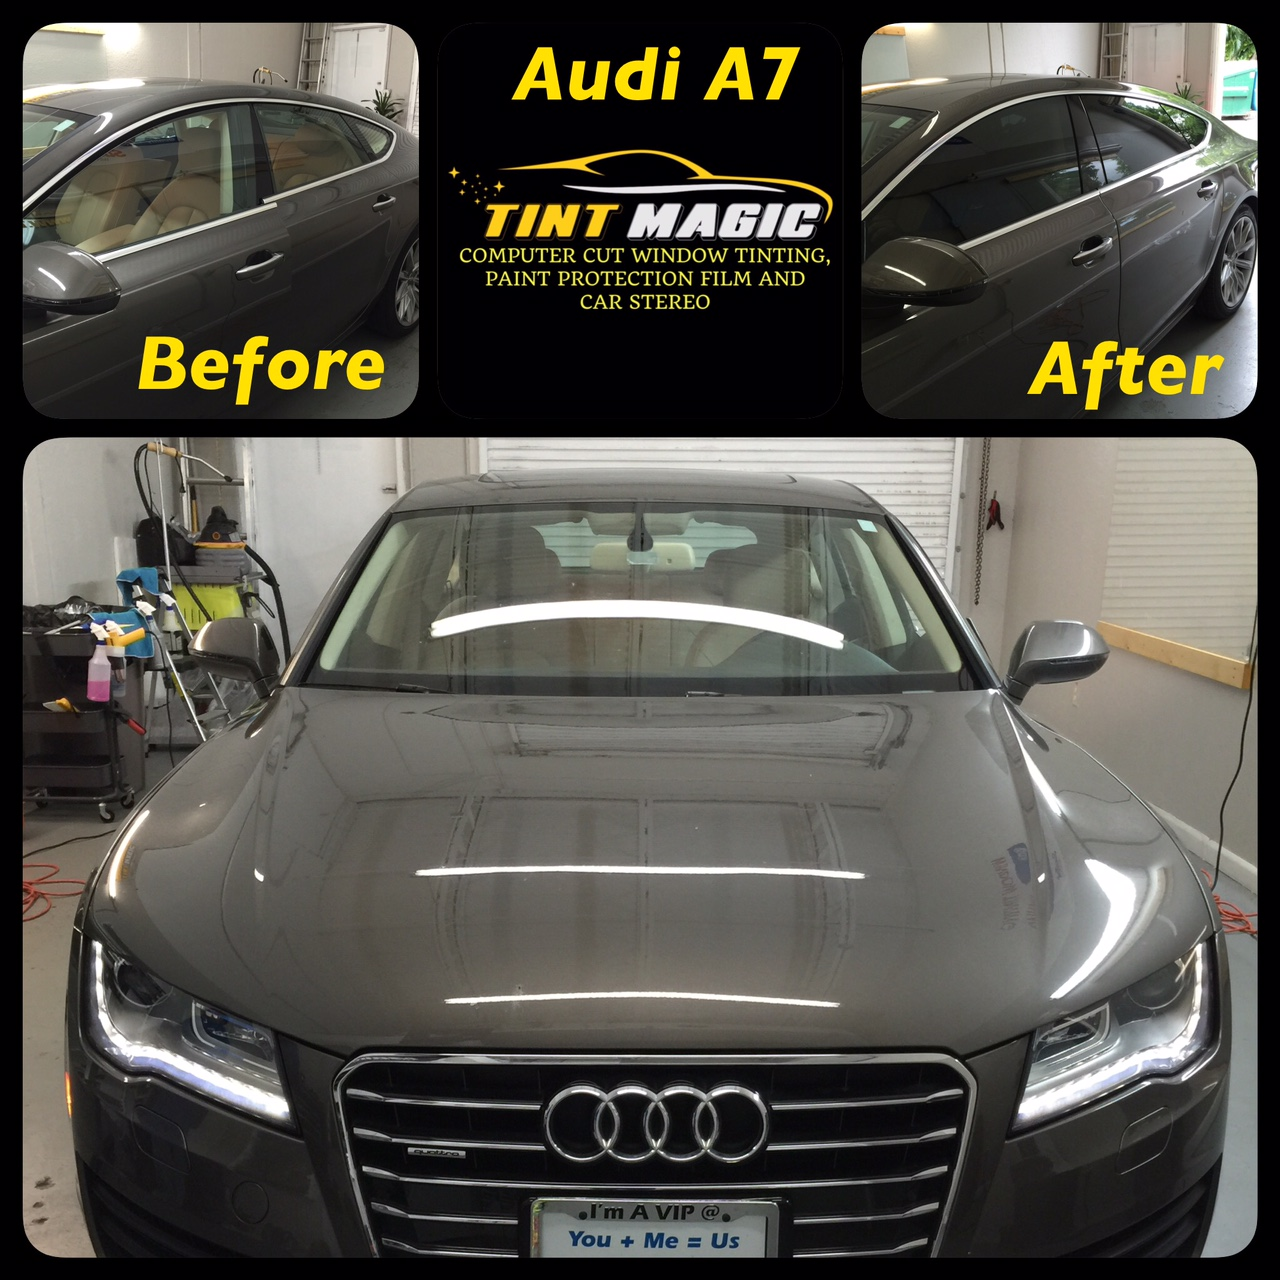 Audi A7 at Tint Magic Window Tinting Coral Springs